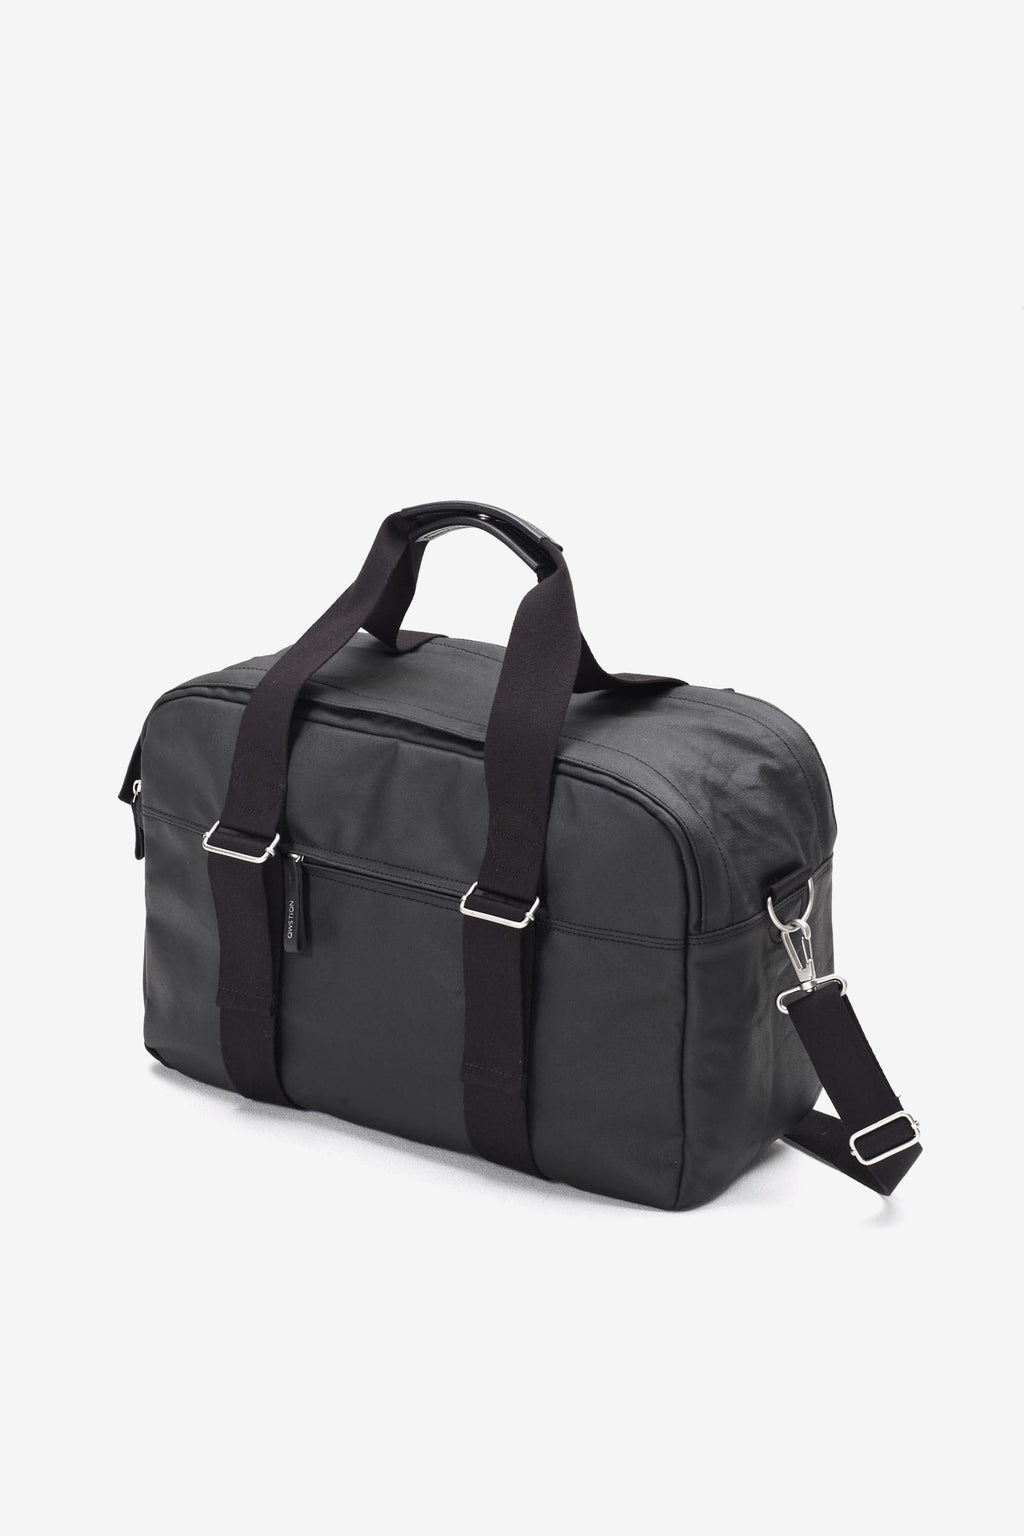 Weekender Organic Jet Black, Bags, QWSTION - Six and Sons